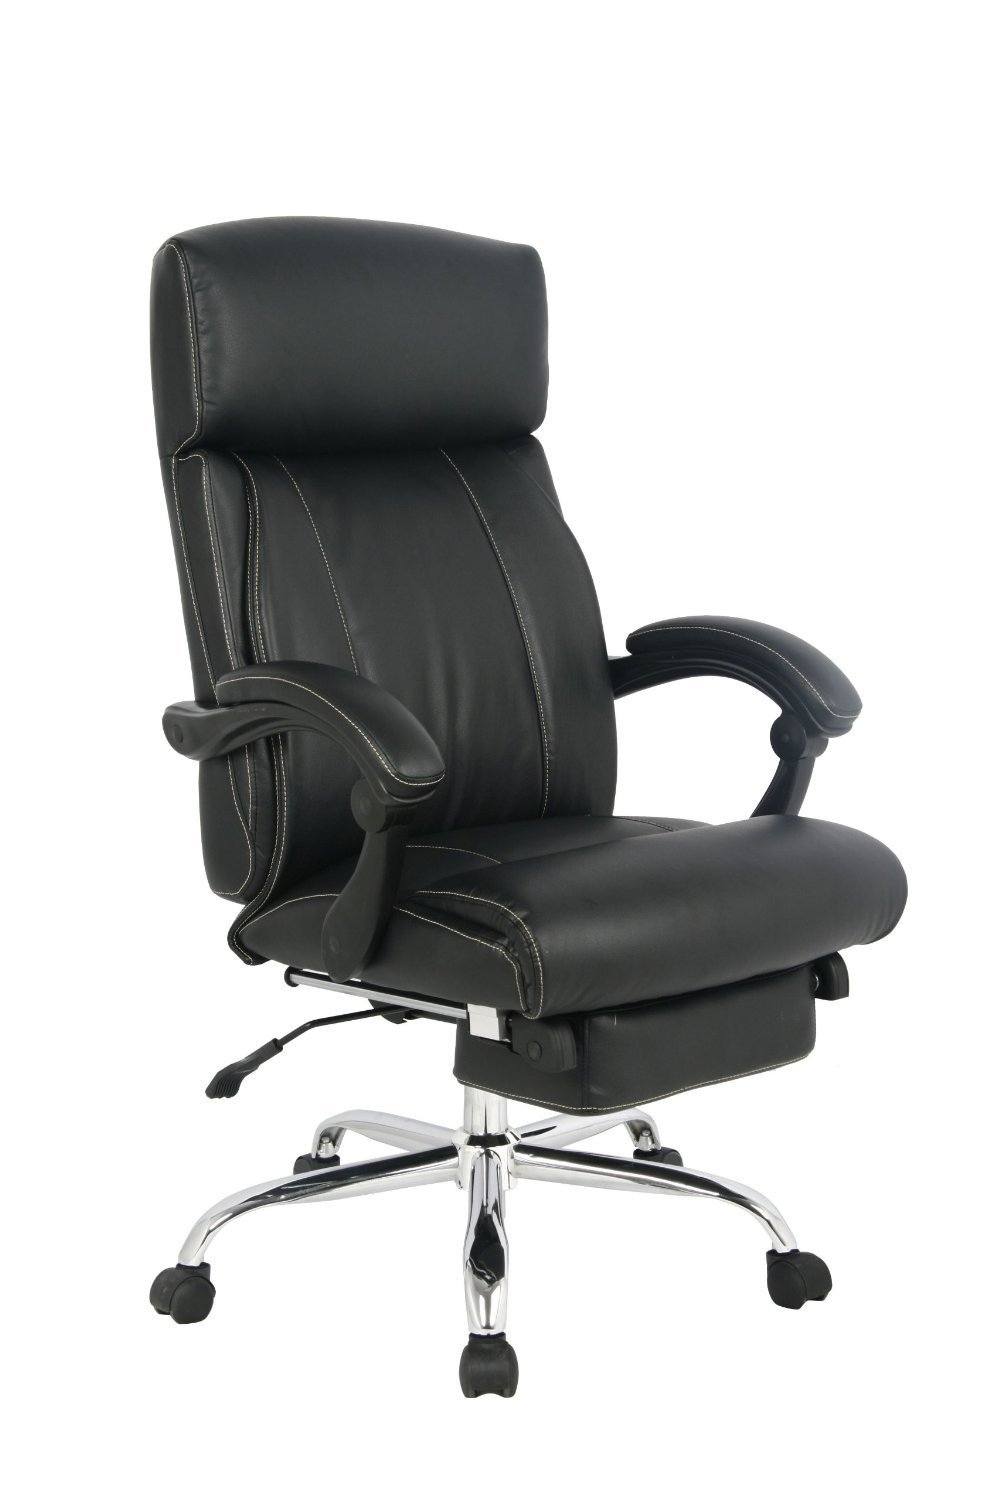 Image of: Photos of Reclining Office Chair With Footrest